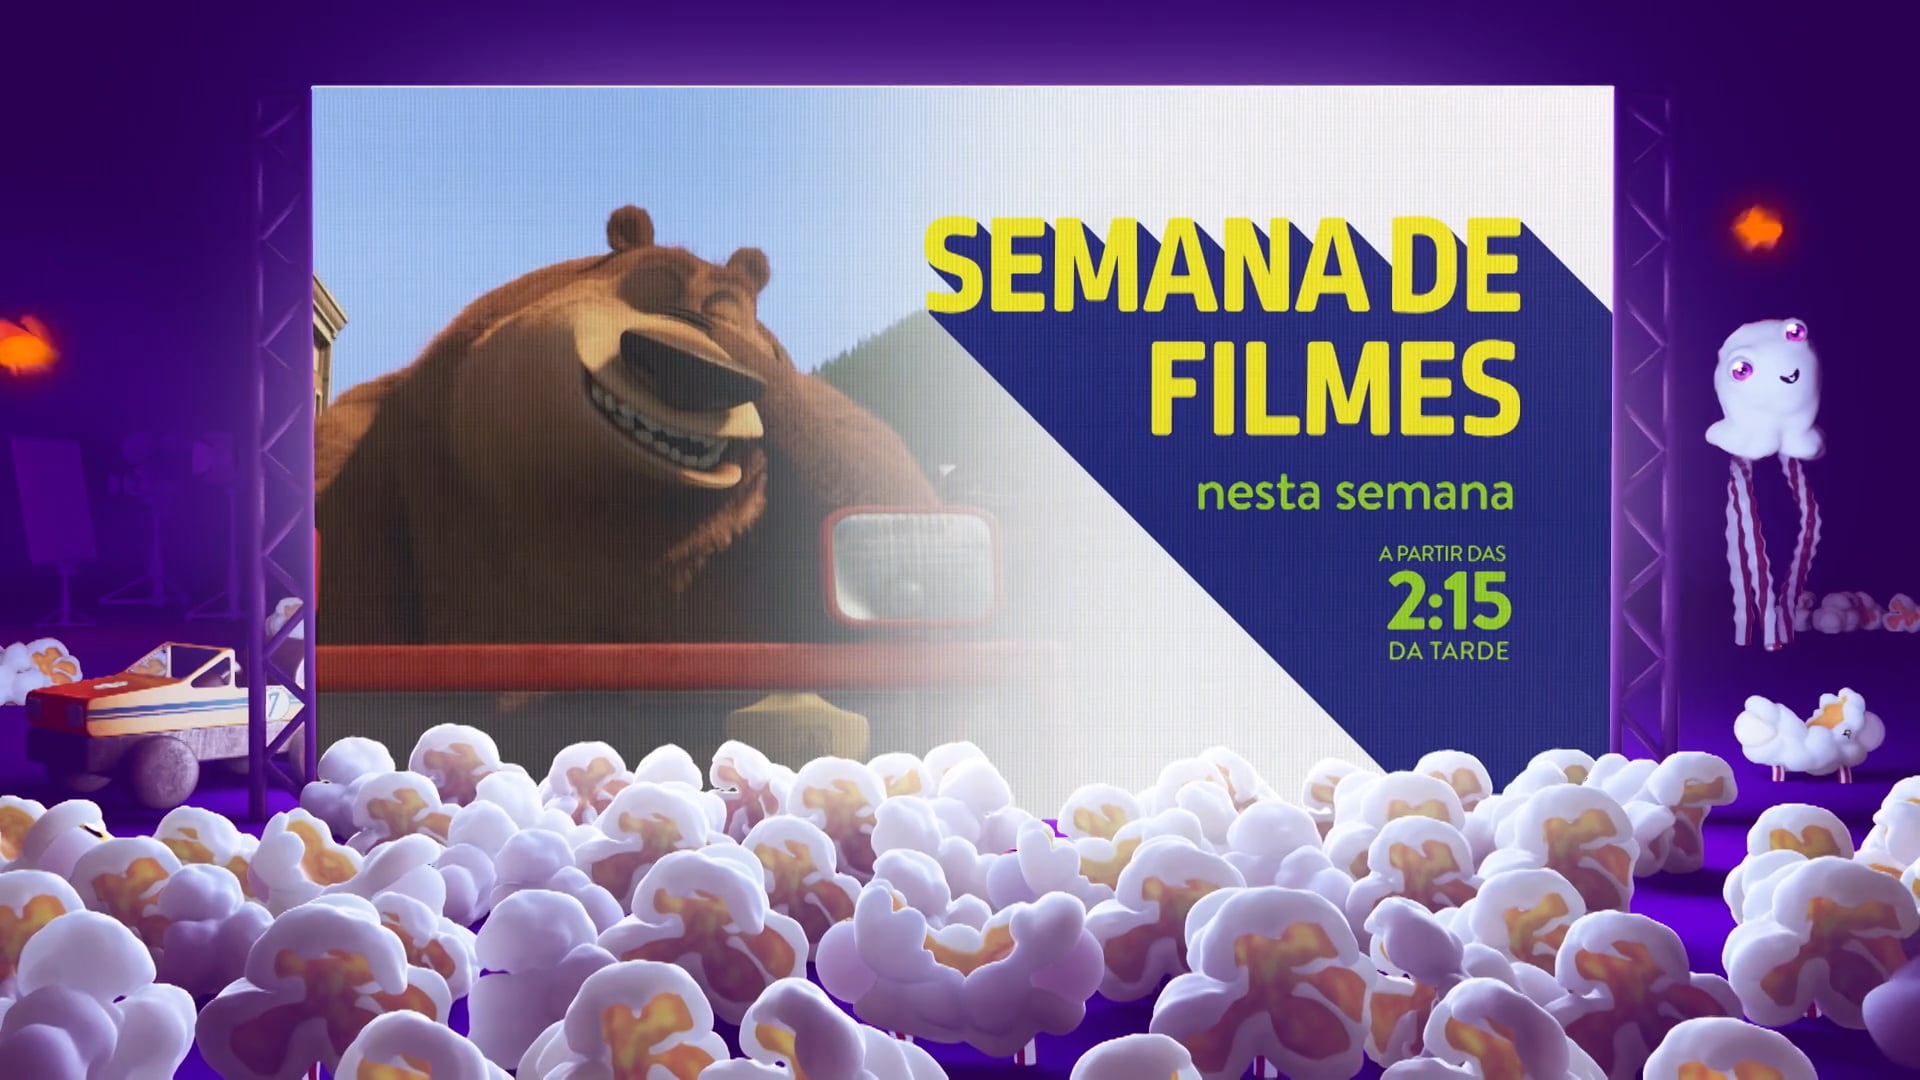 CINECLUB MOVIE WEEK BRAZIL